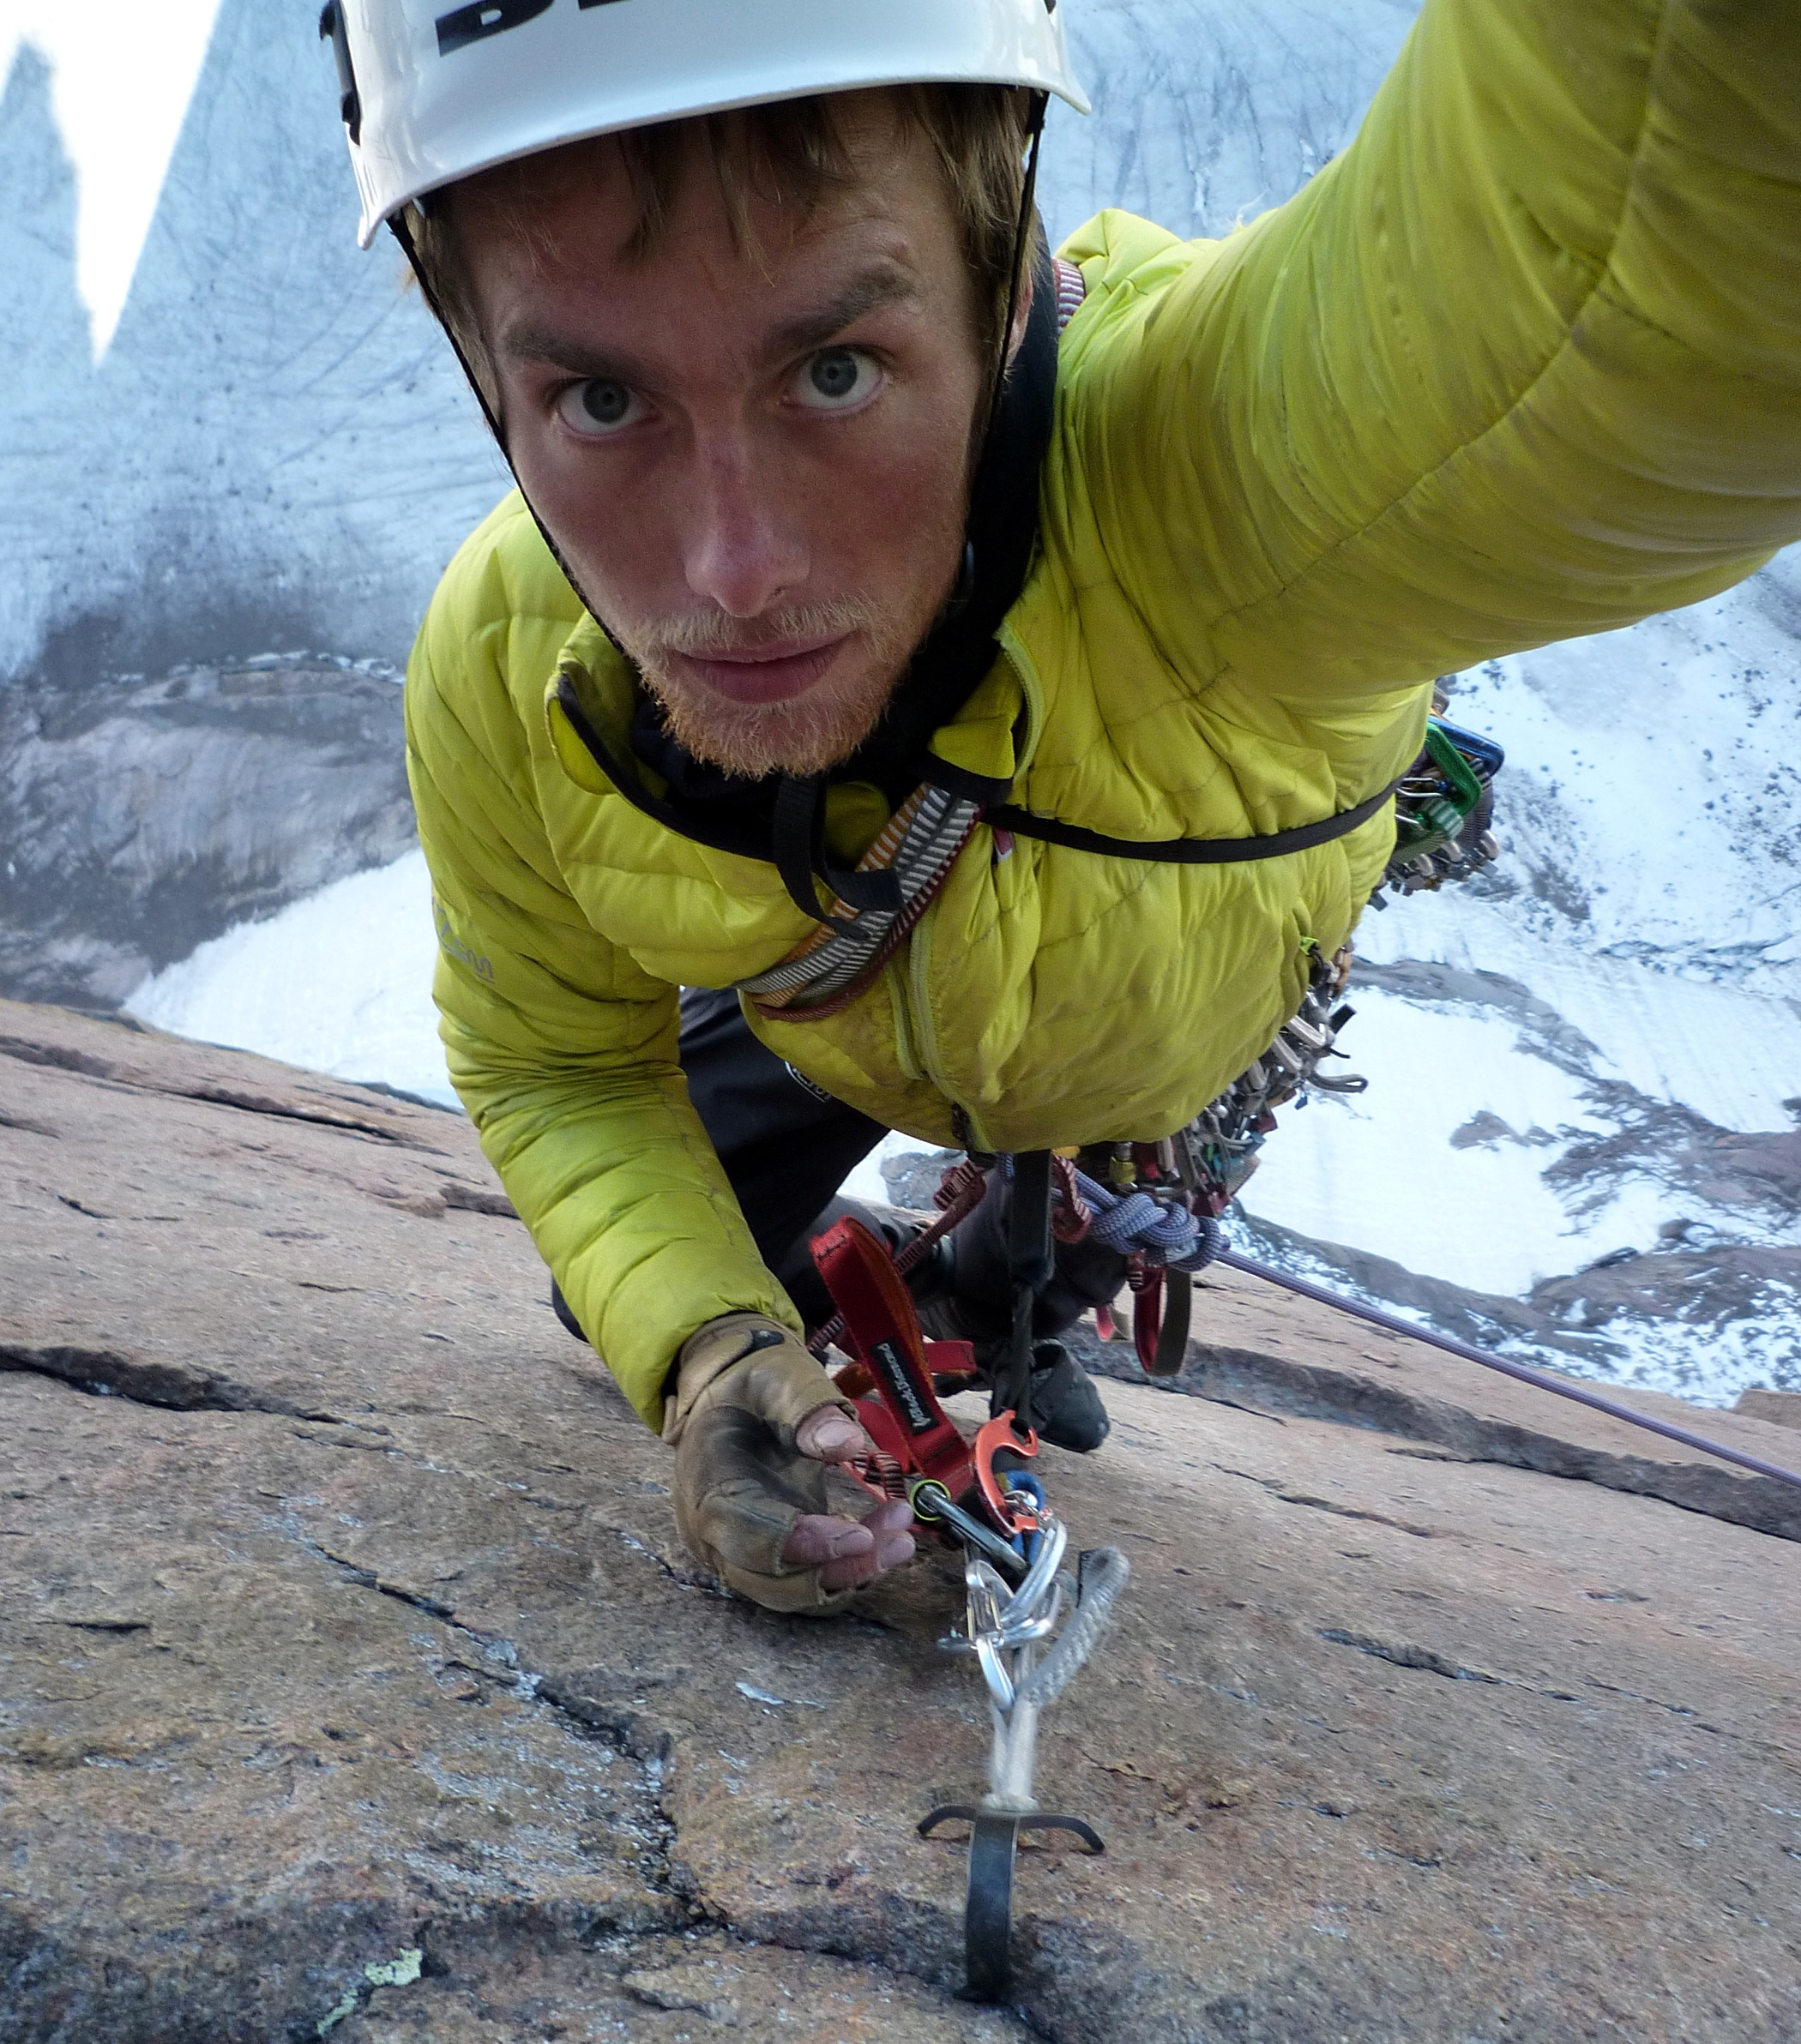 LEO HOULDING - Climber and Adventurer.Based in the Lake District, UK, Leo is one of Britain's top climbers and among the best in the world. He is a veteran of a score of epic ascents, including Everest, but specialises in free climbing the most technical peaks and biggest walls in the world. Leo led a 3-man team across Antarctica by sled and by snow-kite and completed the first ascent of Spectre, the highest peak in the Gothic Mountains.